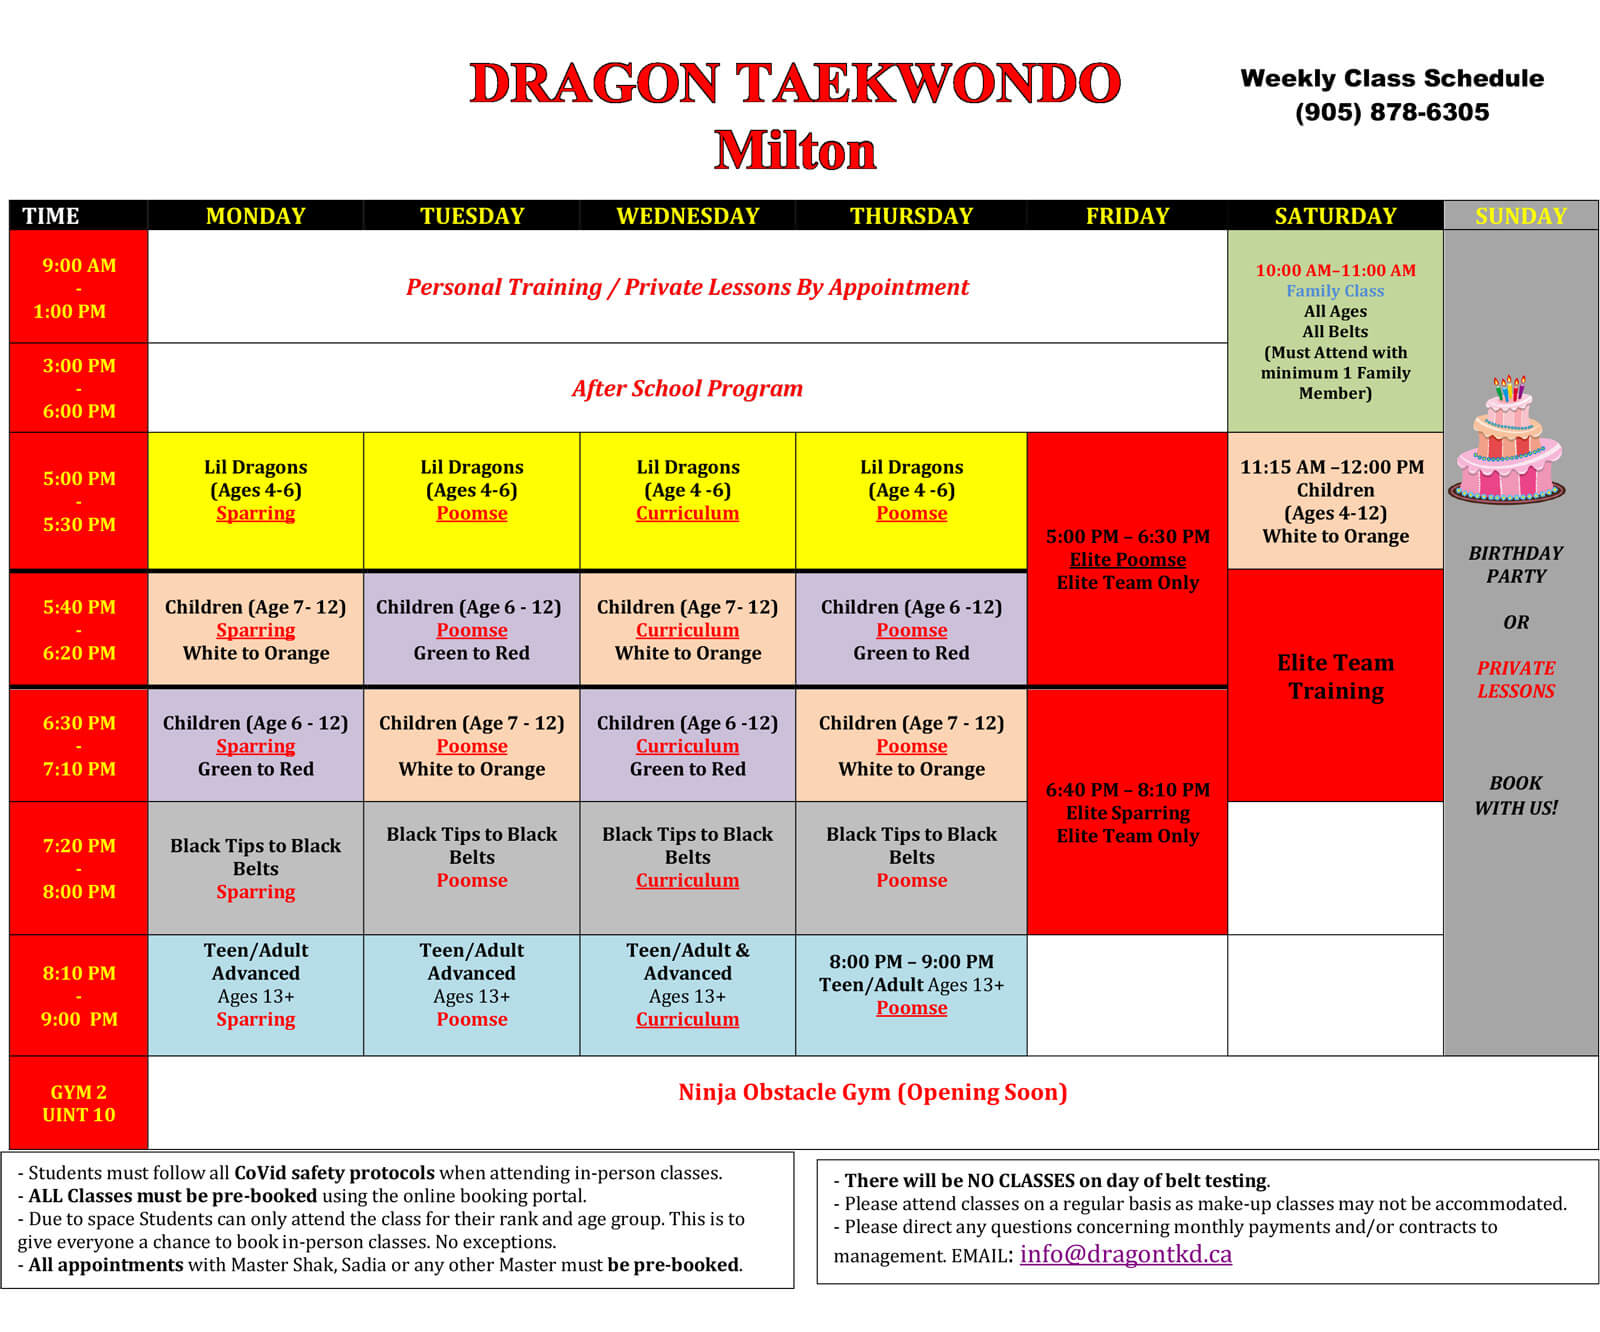 Dragon Taekwondo New Schedule